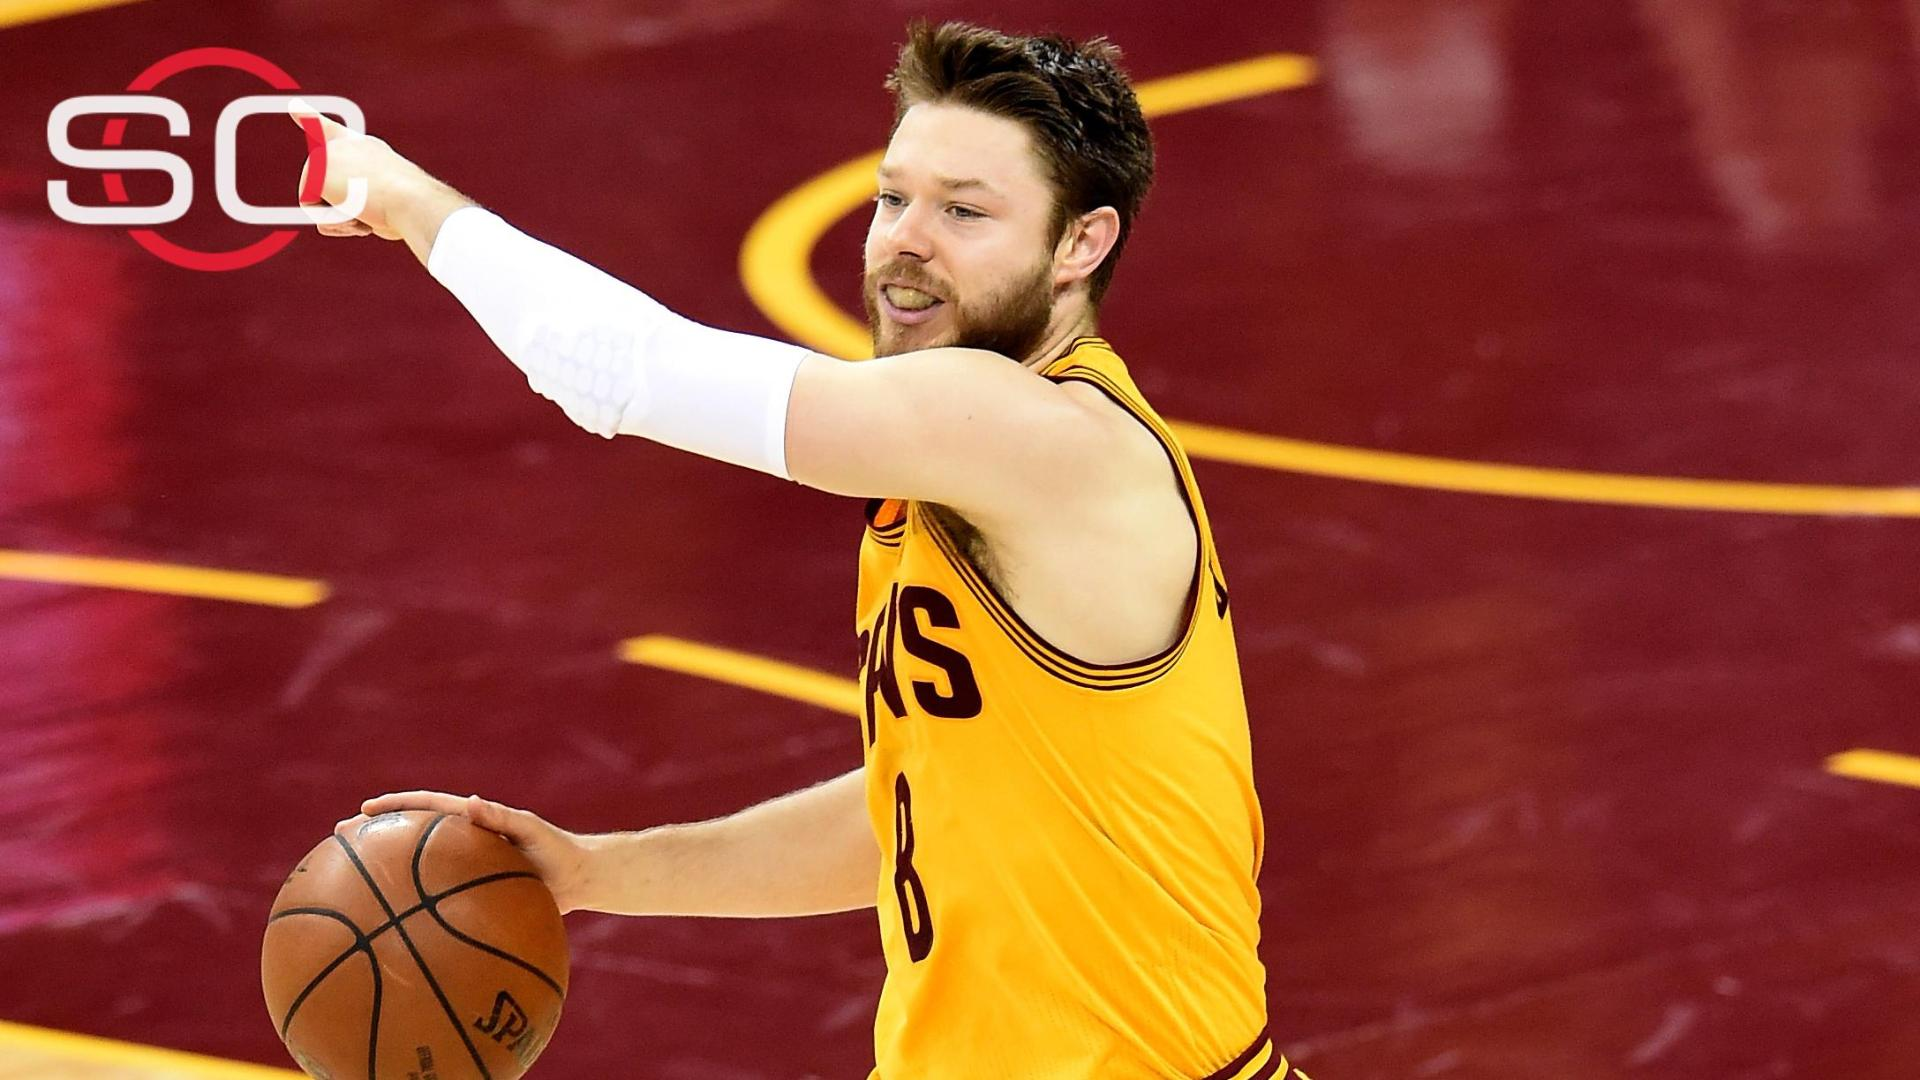 http://a.espncdn.com/media/motion/2015/0611/dm_150611_nba_dellavedova__int1094/dm_150611_nba_dellavedova__int1094.jpg